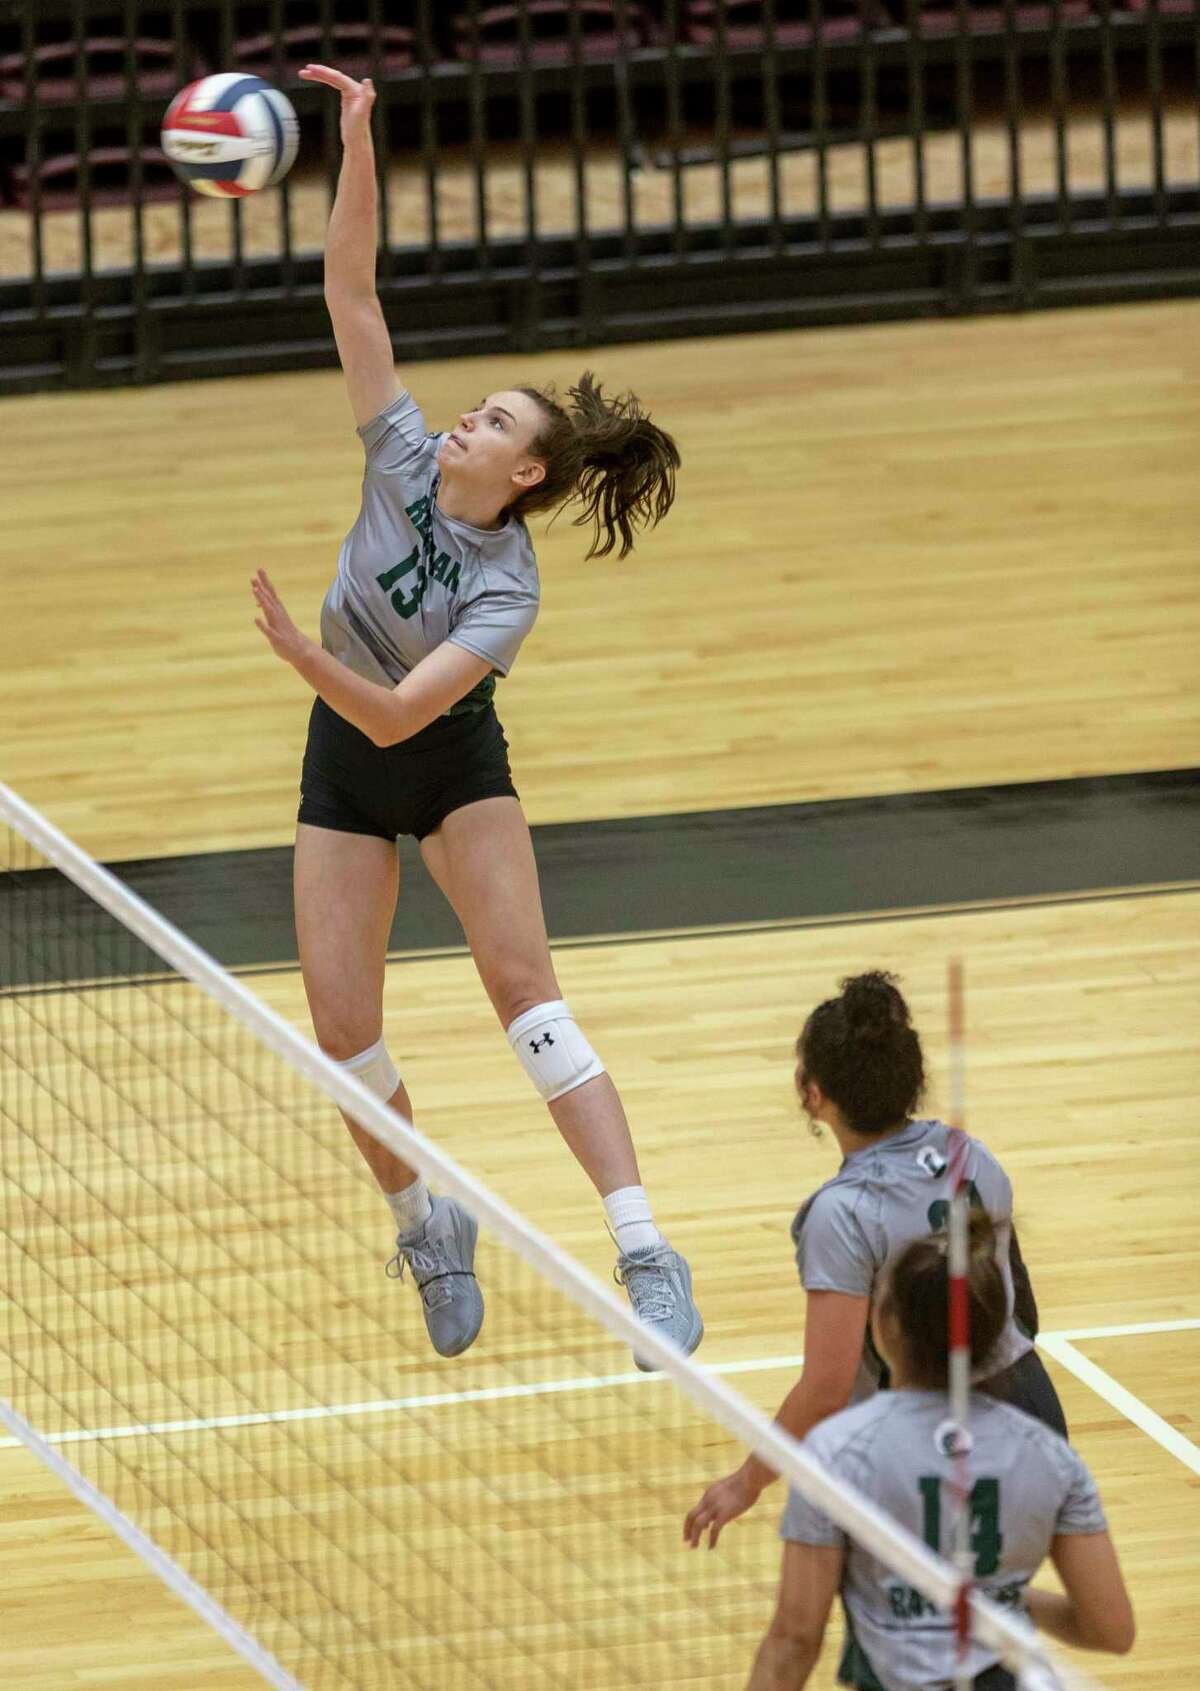 Reagan's Katie Hill hits the ball Tuesday, Aug. 10, 2021 at Littleton Gym during the Rattlers' game against O'Connor.